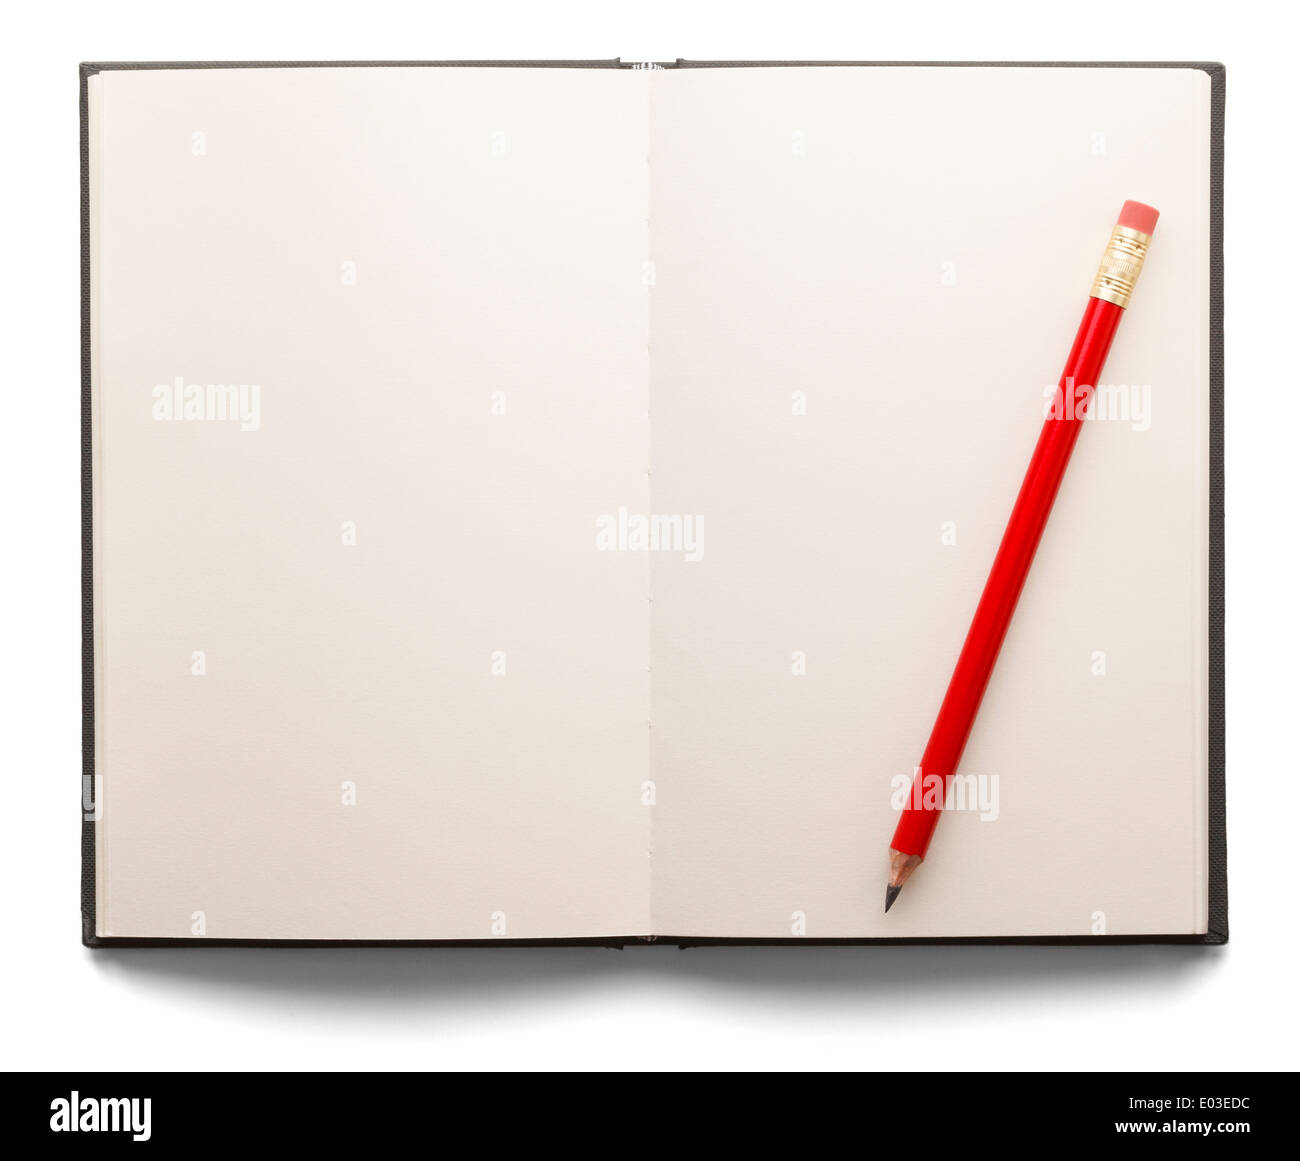 Open book with white pages and a red pencil on a white isolated background. - Stock Image